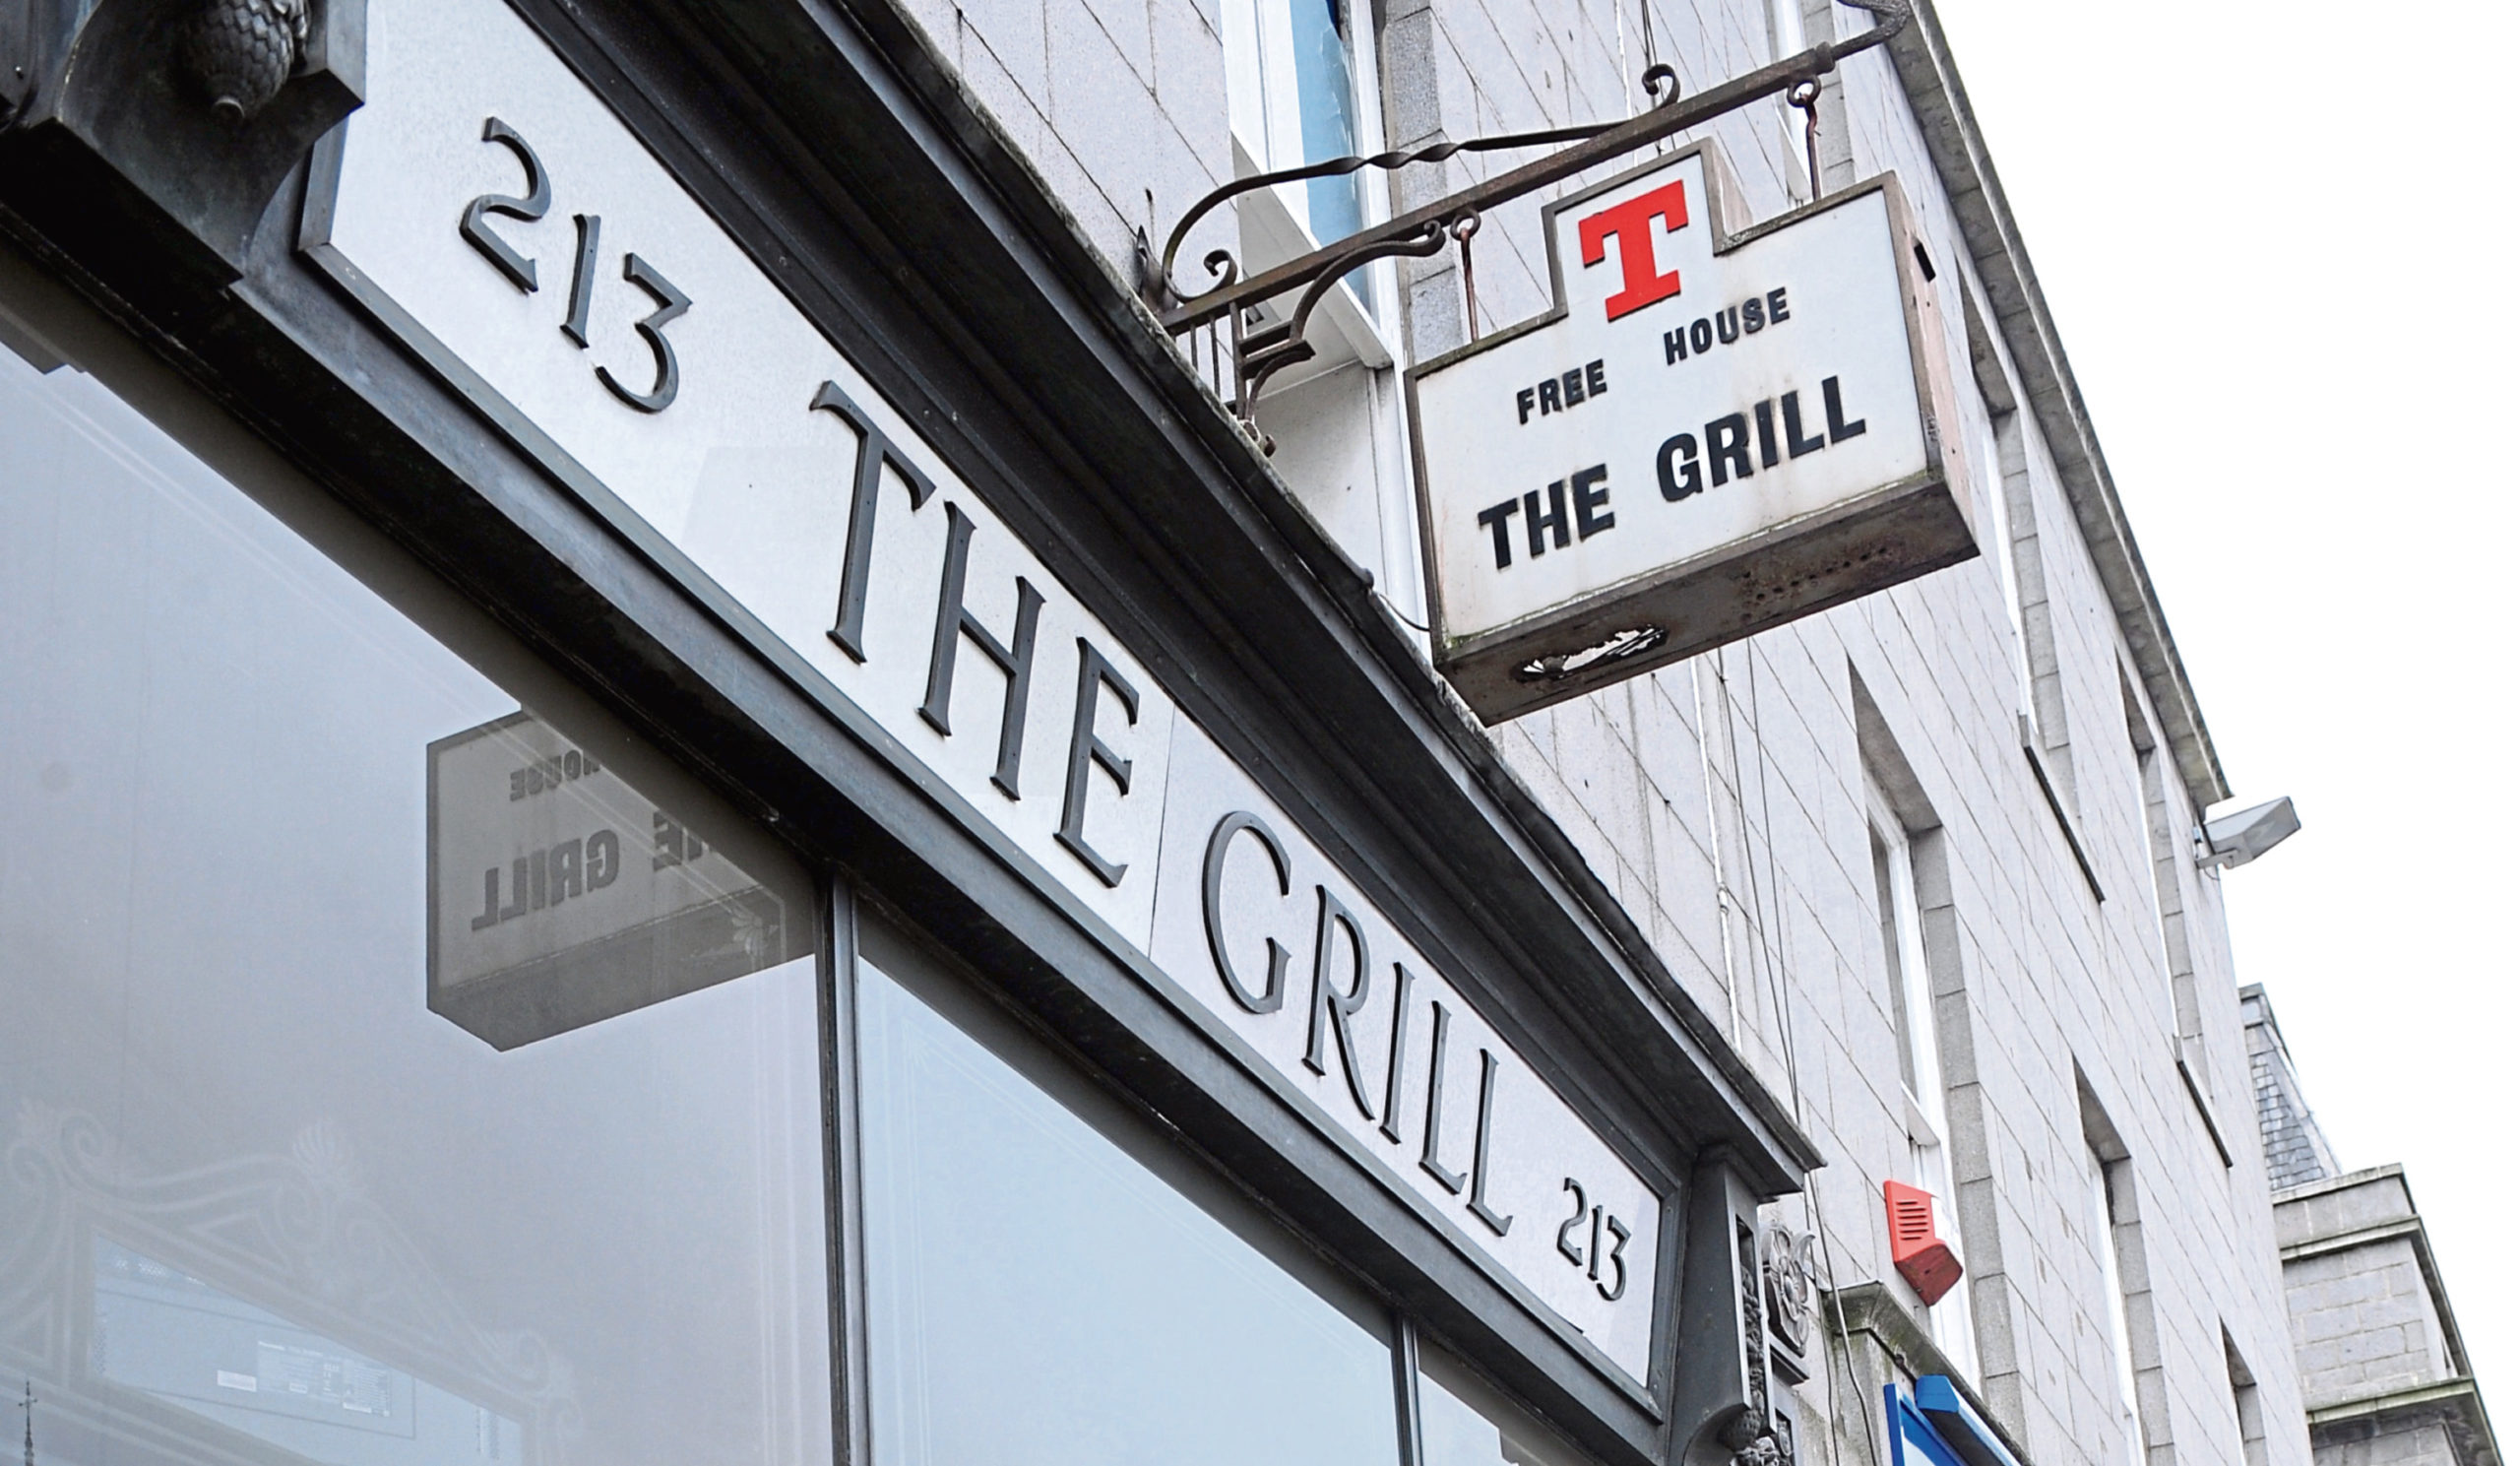 The Grill pub on Union Street's exterior will undergo a refurbishment